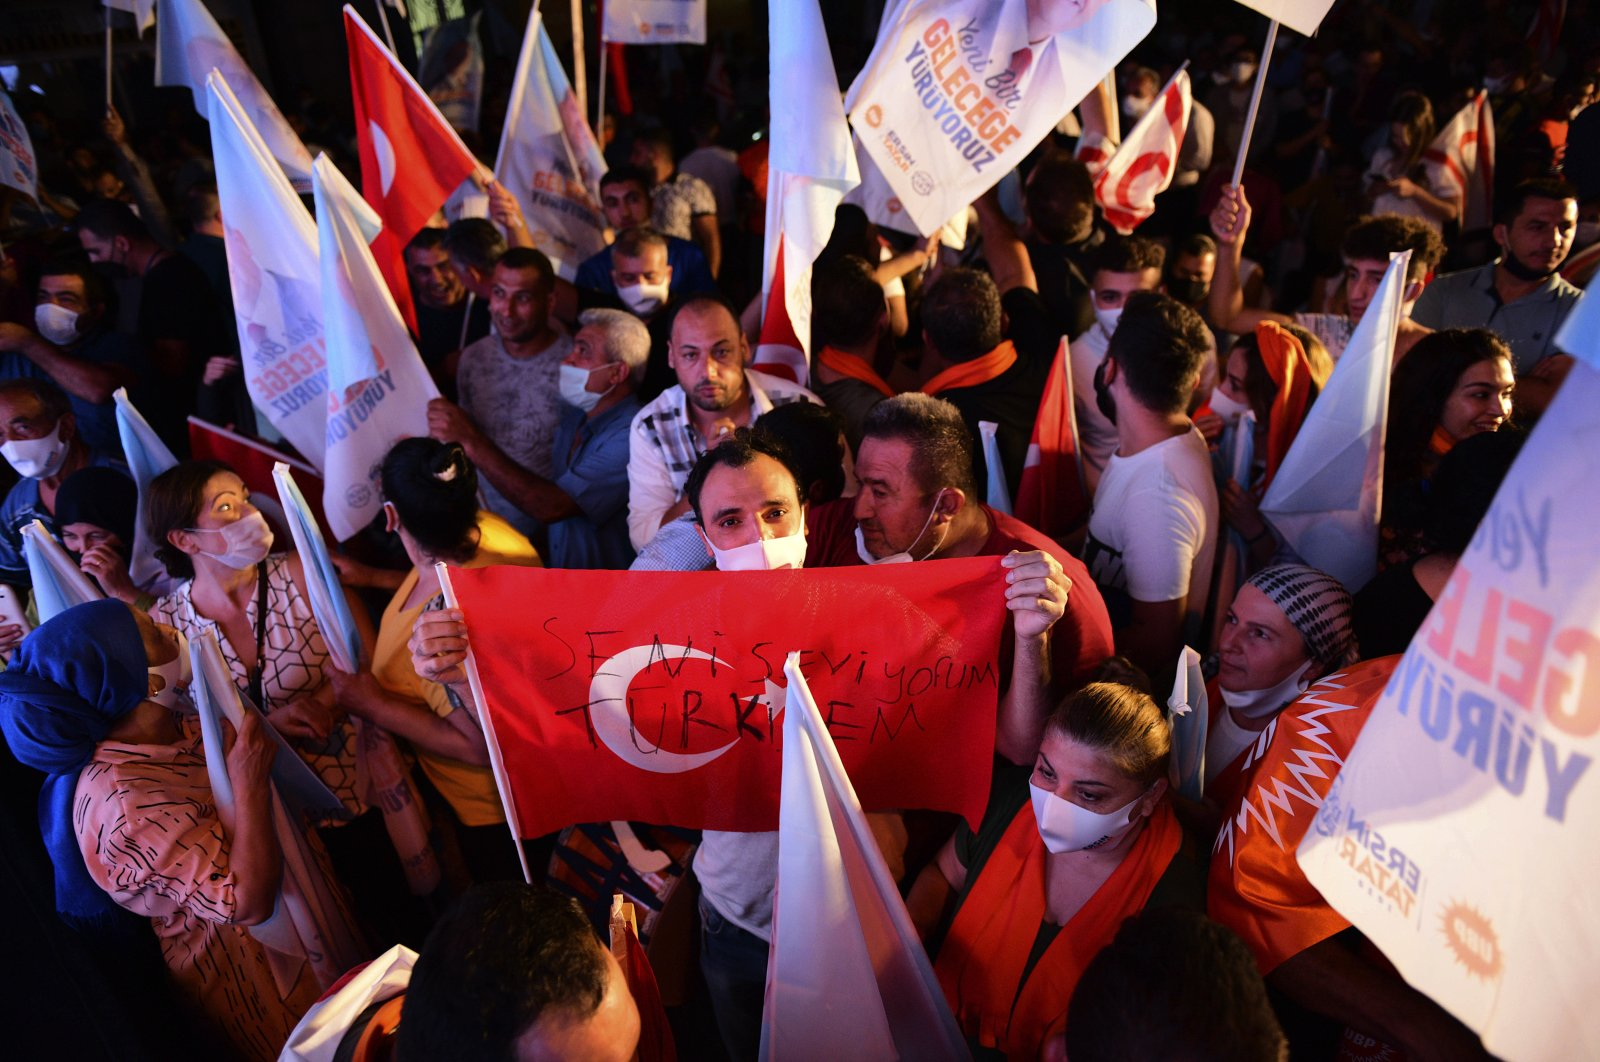 A supporter of newly elected Turkish Cypriot leader Ersin Tatar holds a Turkish flag and celebrates with others in the capital Lefkoşa (Nicosia), Oct. 18, 2020. (AP Photo)